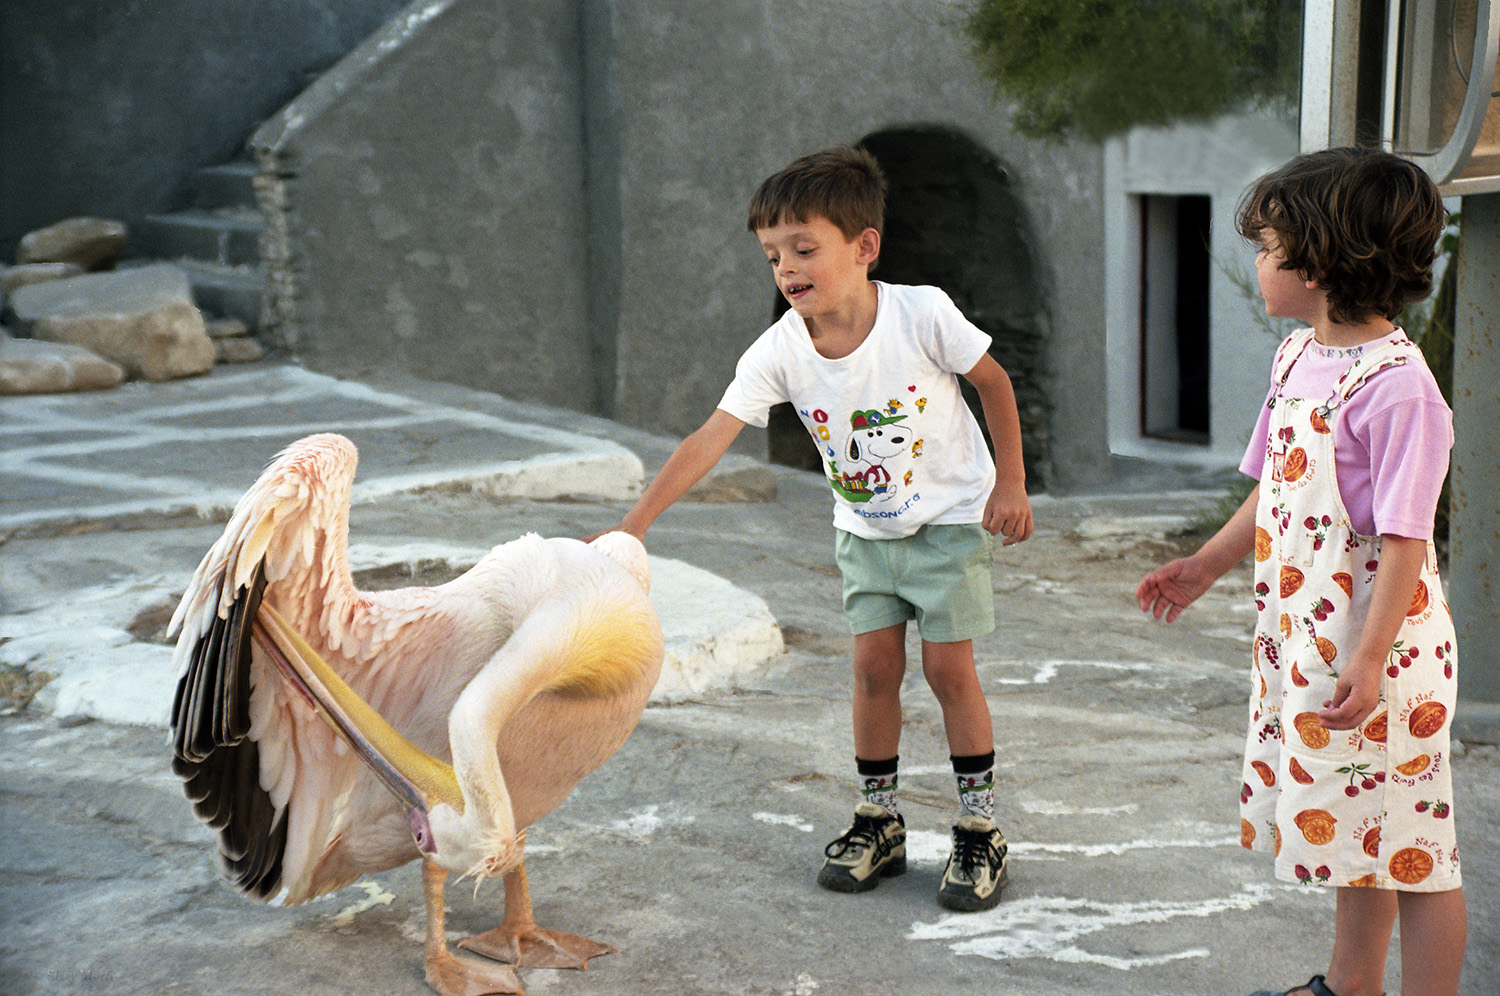 Greece / Mykonos / The Pelican